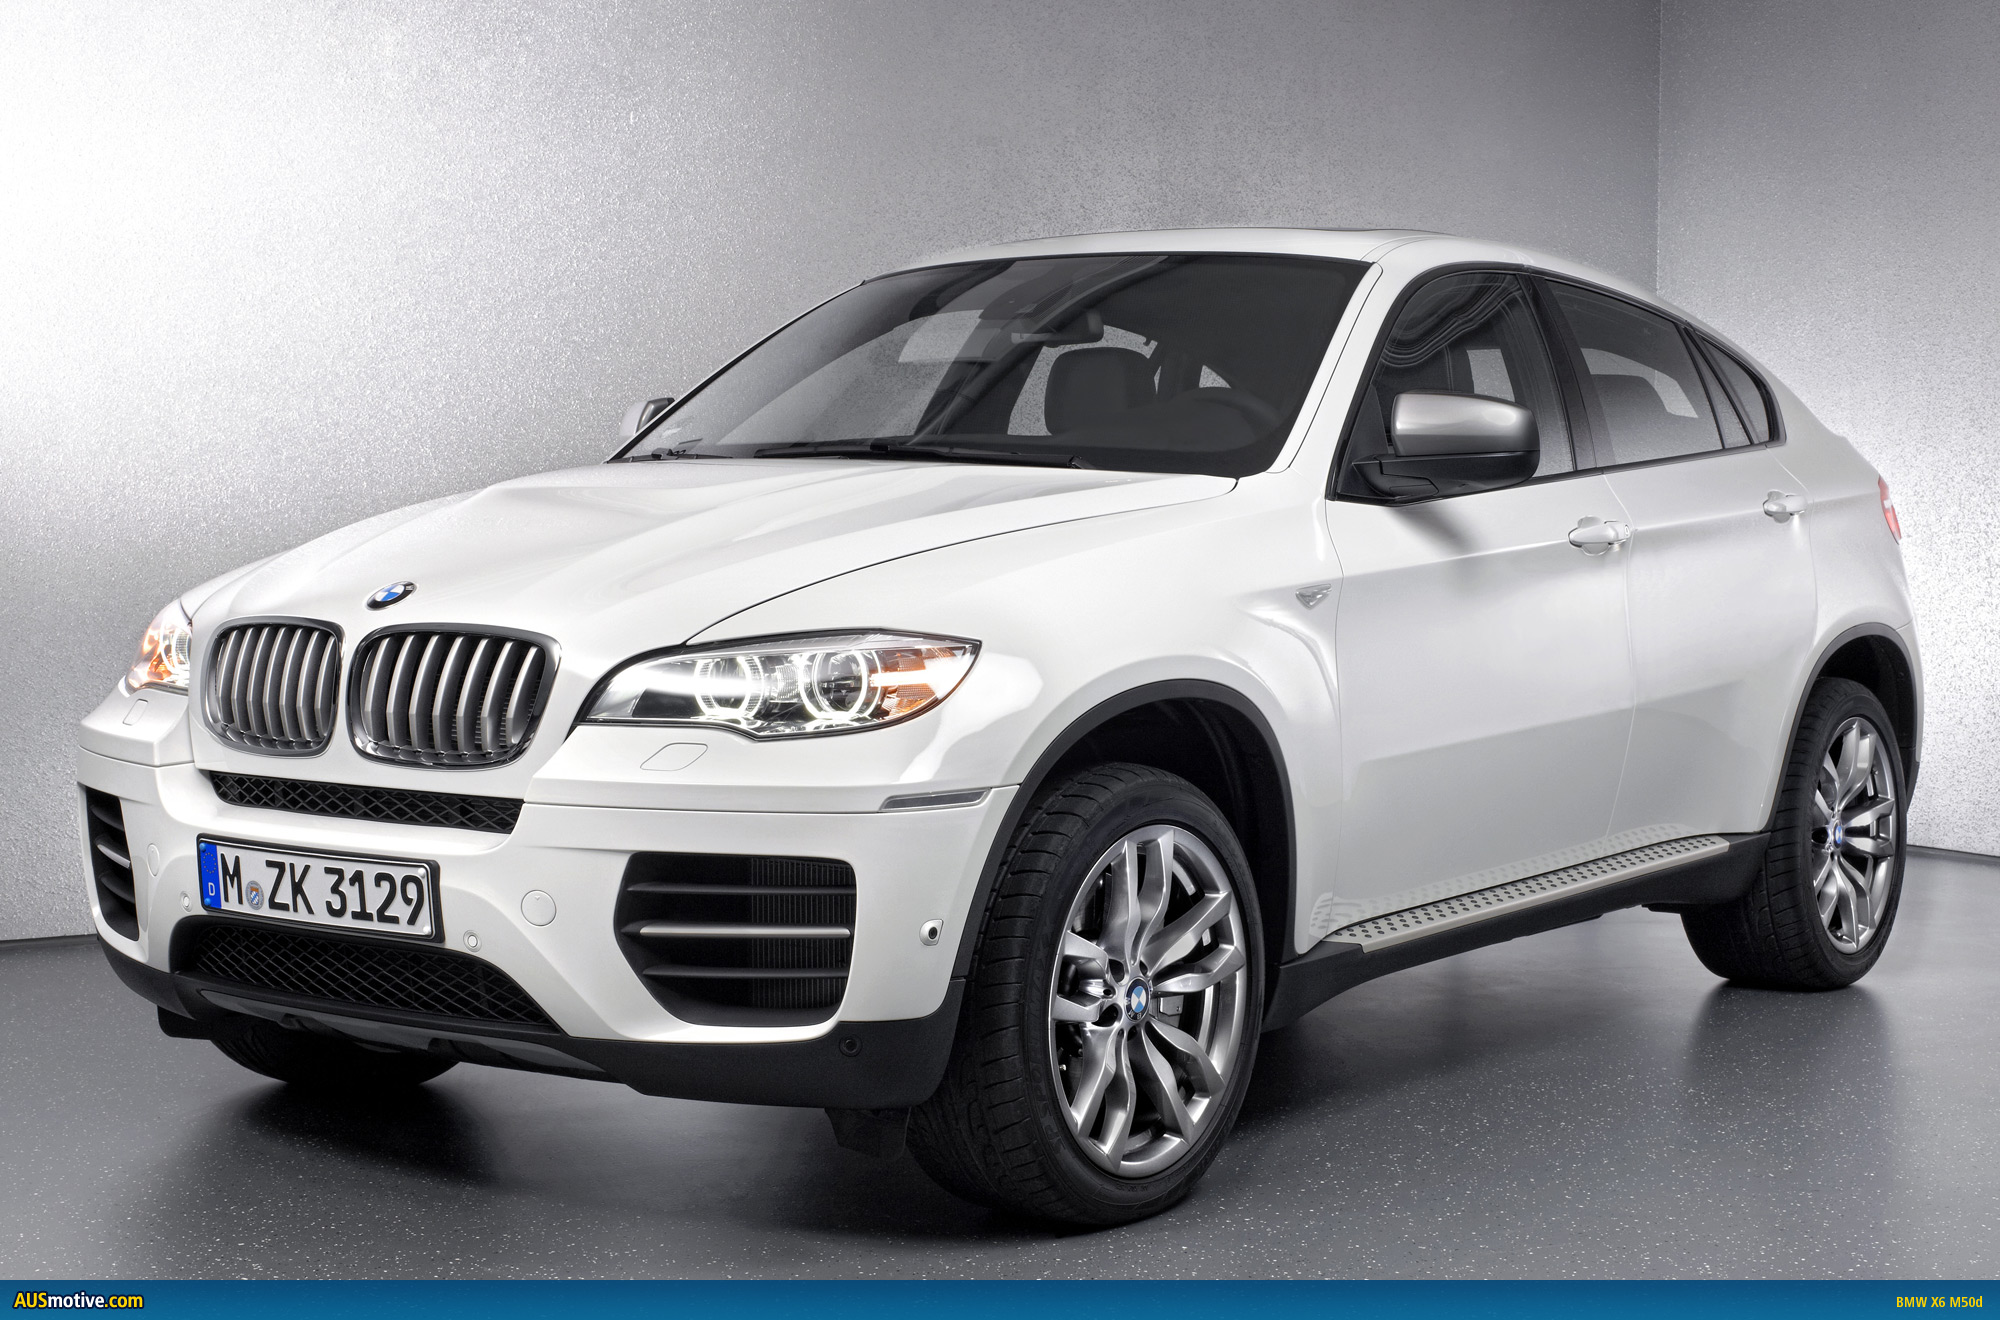 bmw x5 m50d x6 m50d australian pricing. Black Bedroom Furniture Sets. Home Design Ideas